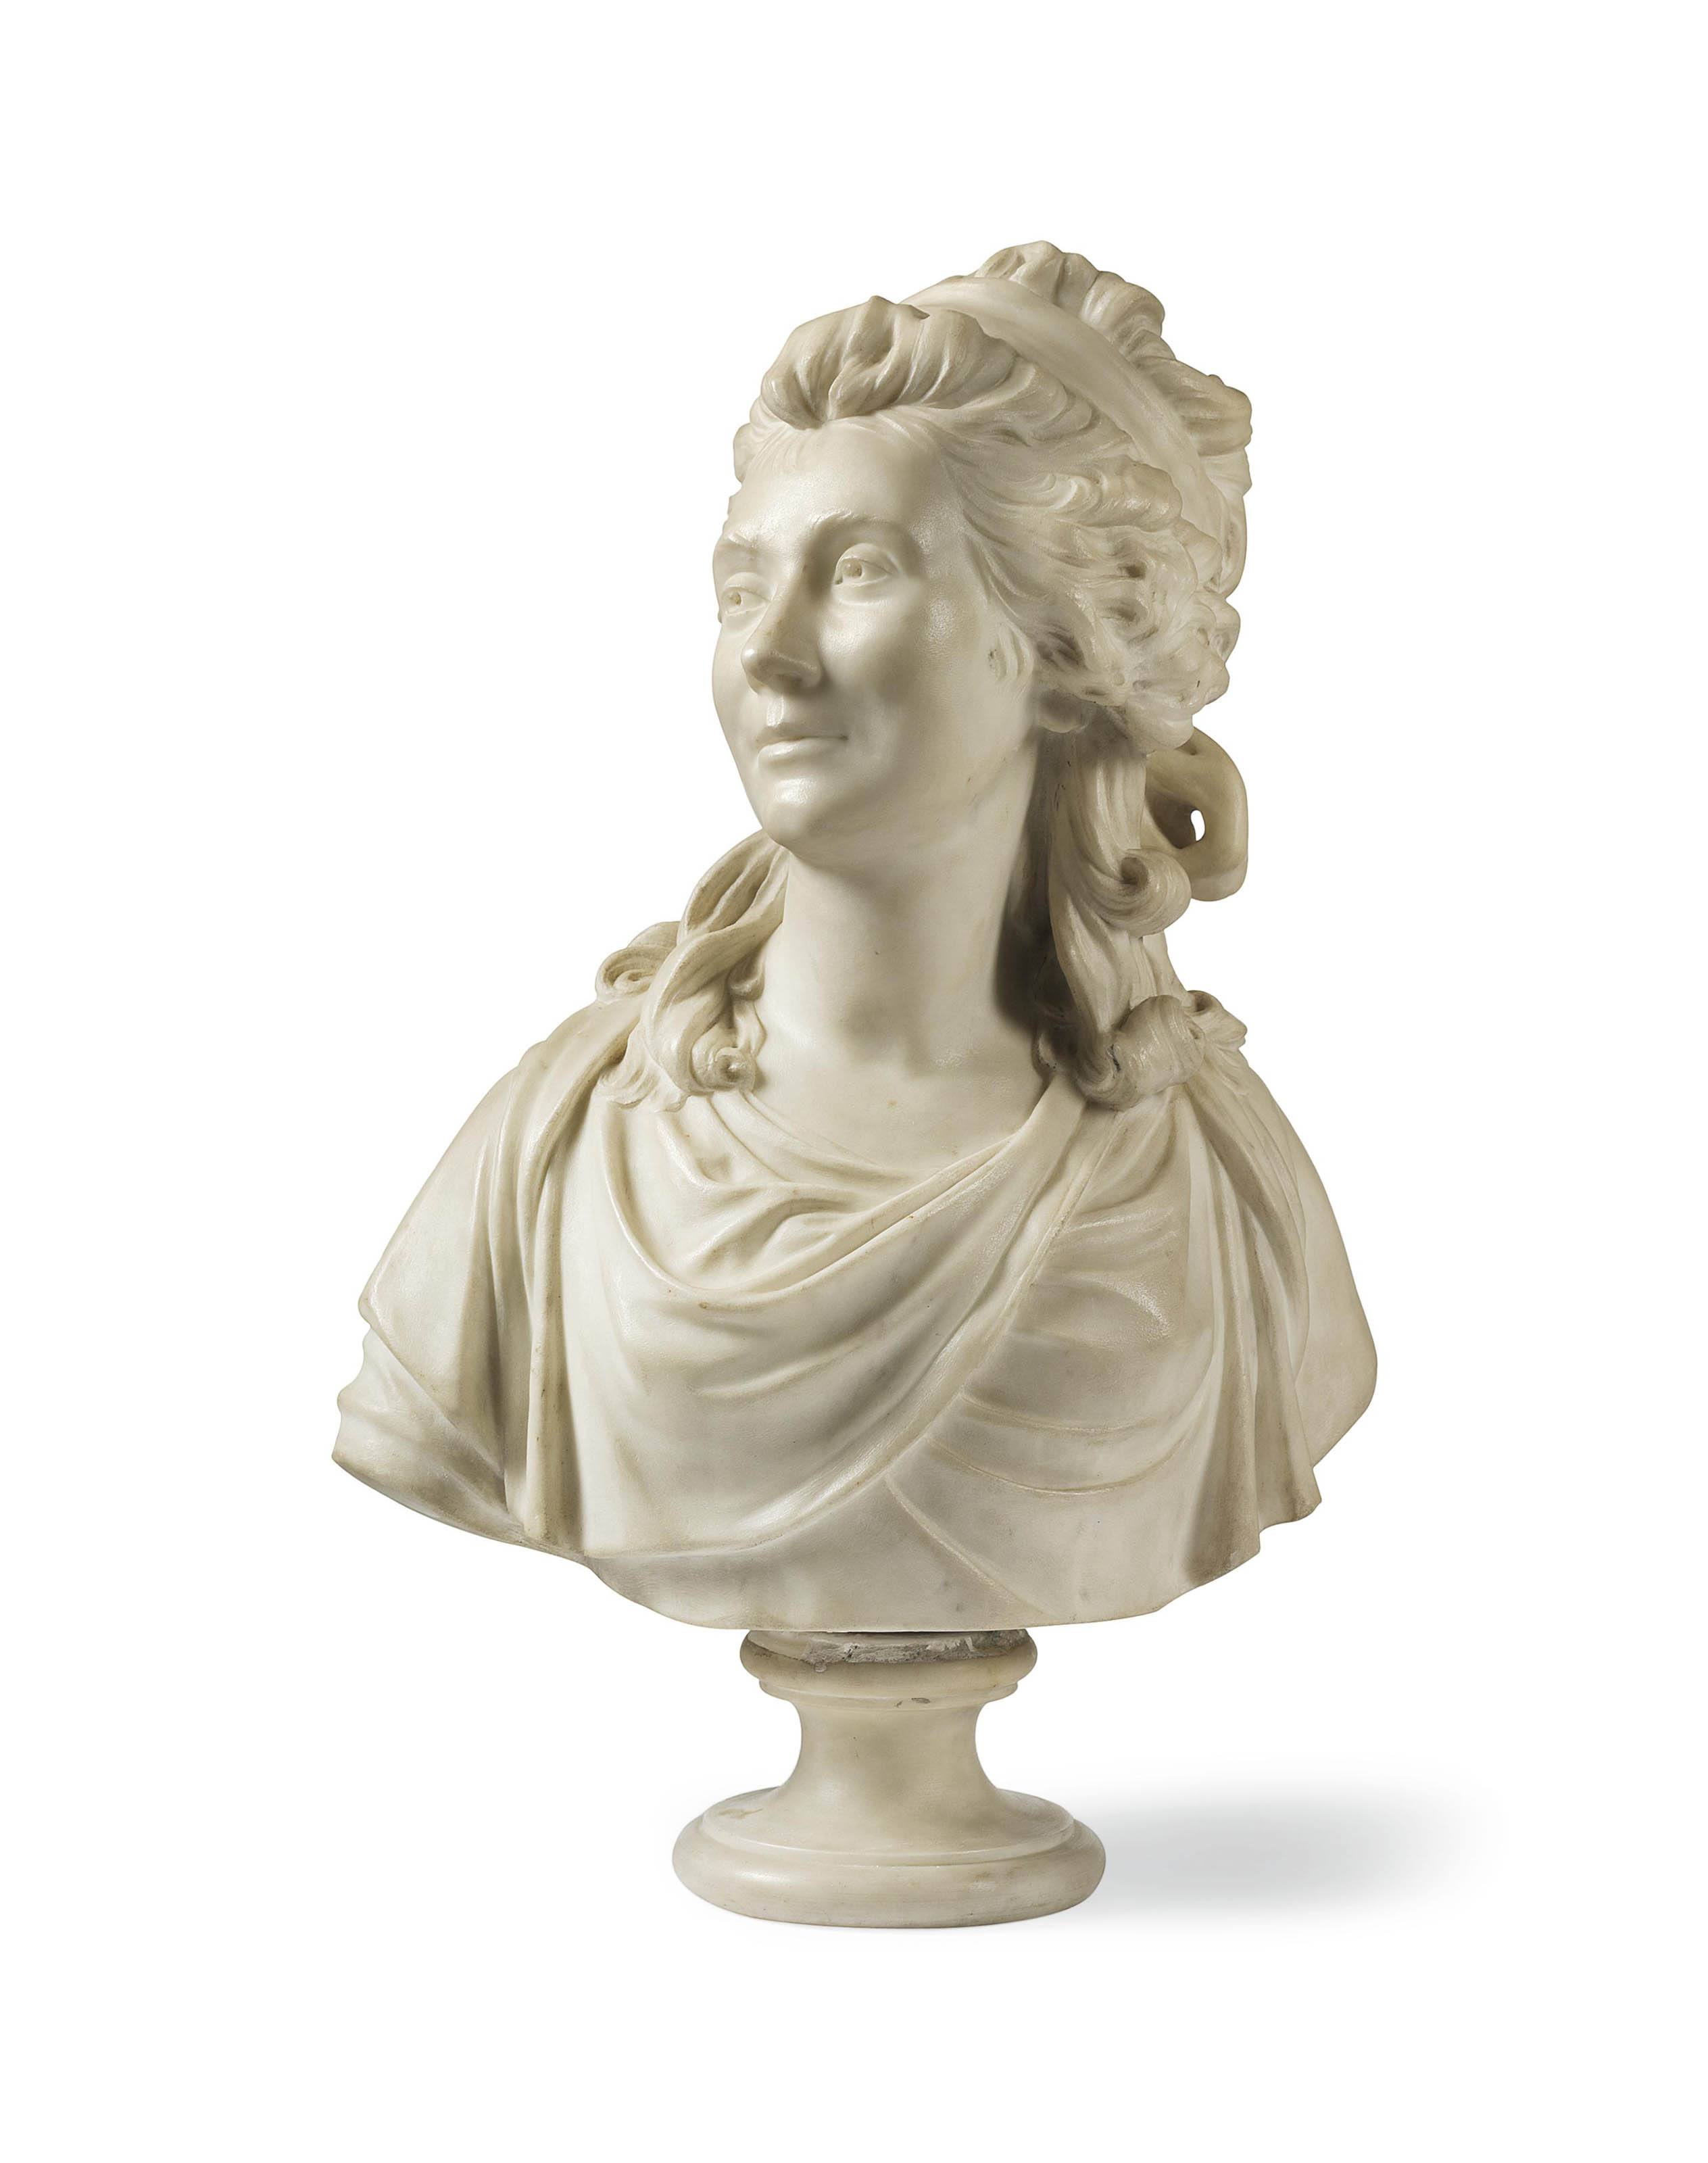 A WHITE MARBLE BUST OF THE COMTESSE DE SABRAN